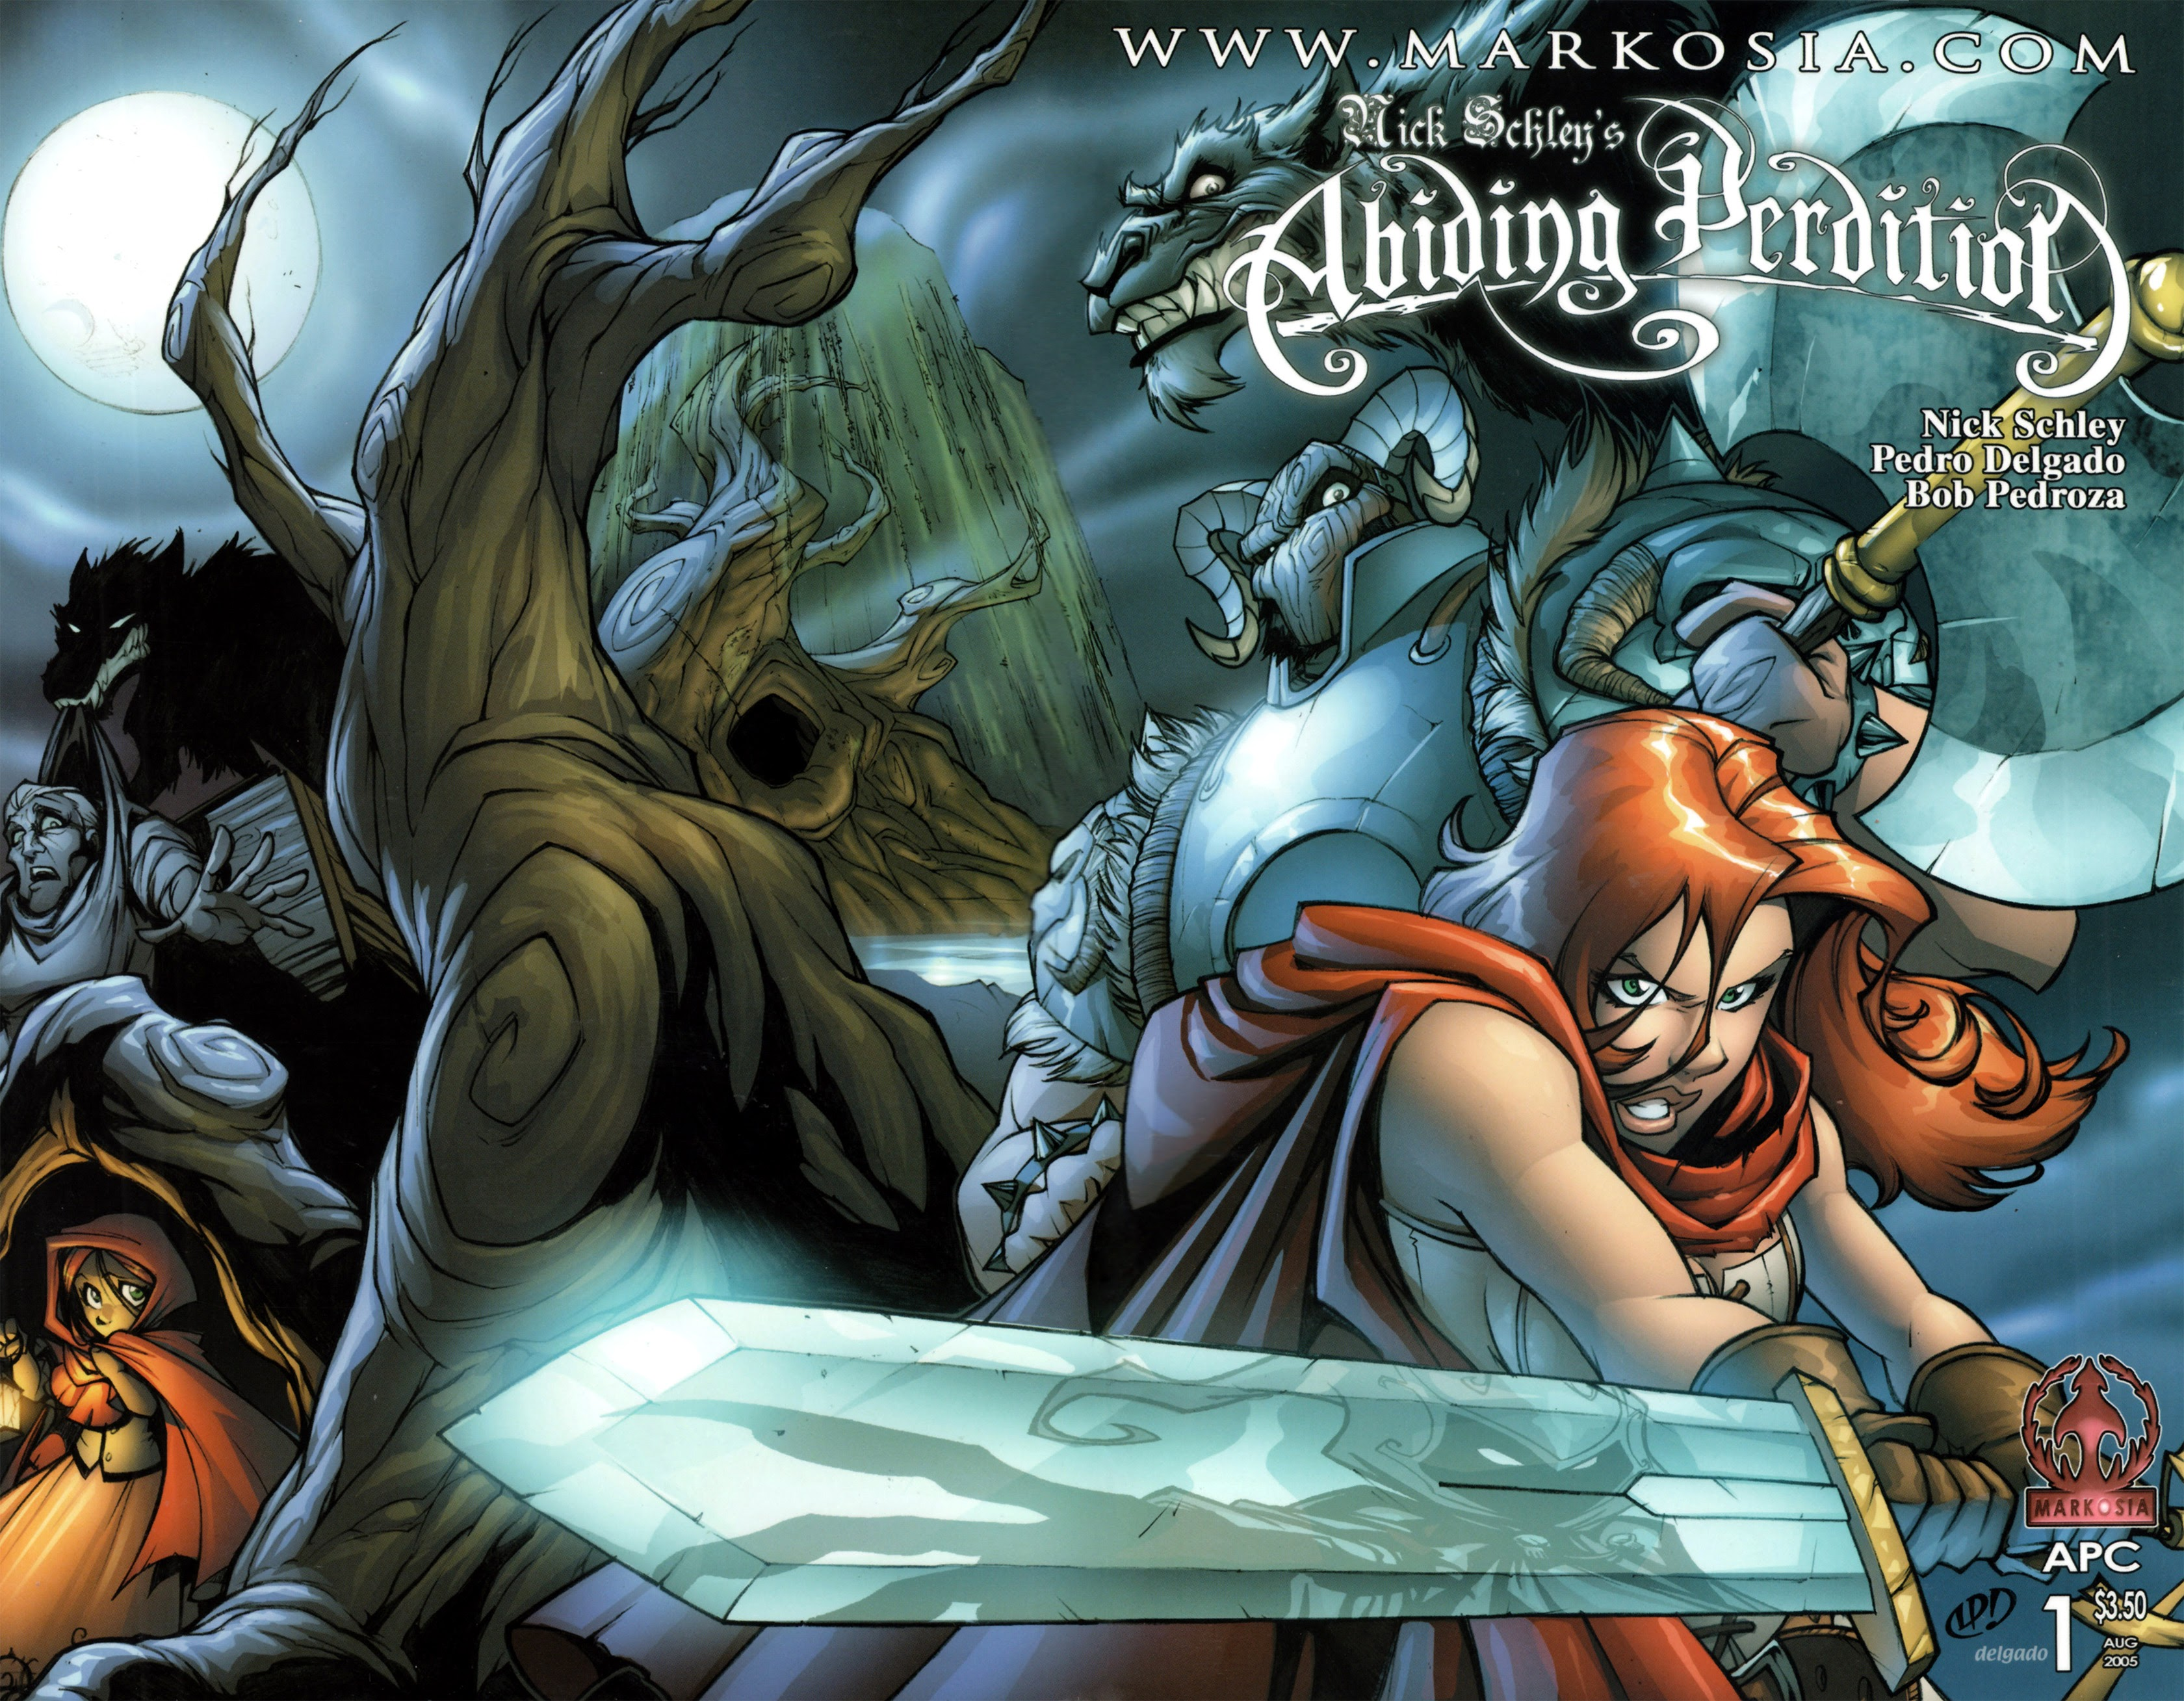 Read online Abiding Perdition comic -  Issue #1 - 1